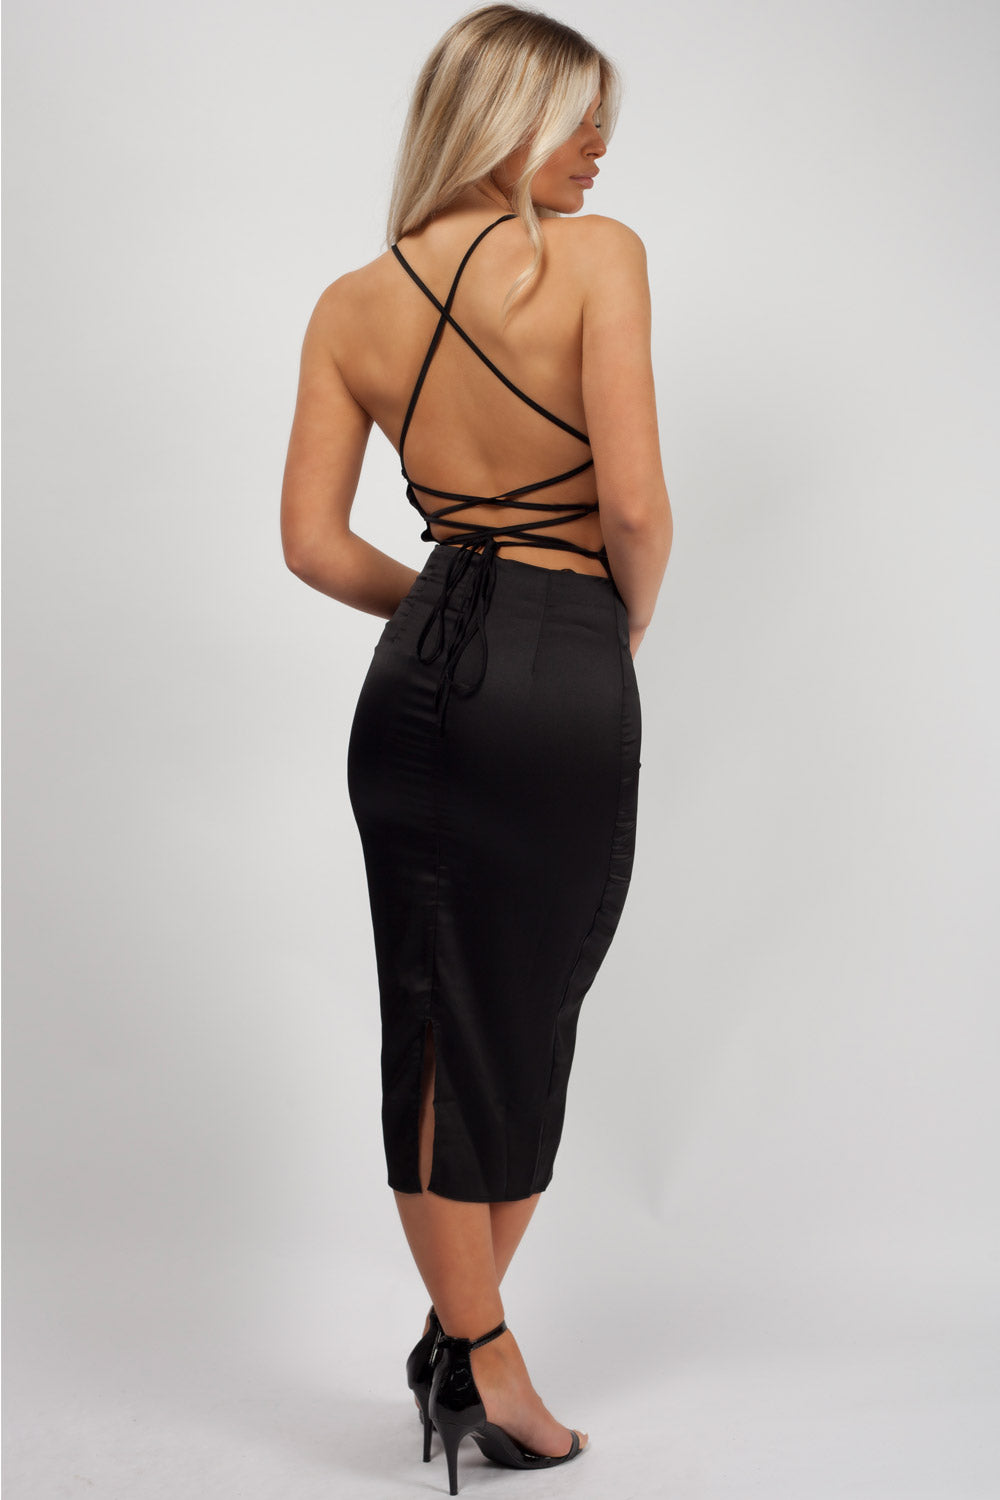 black lace up back midi dress uk